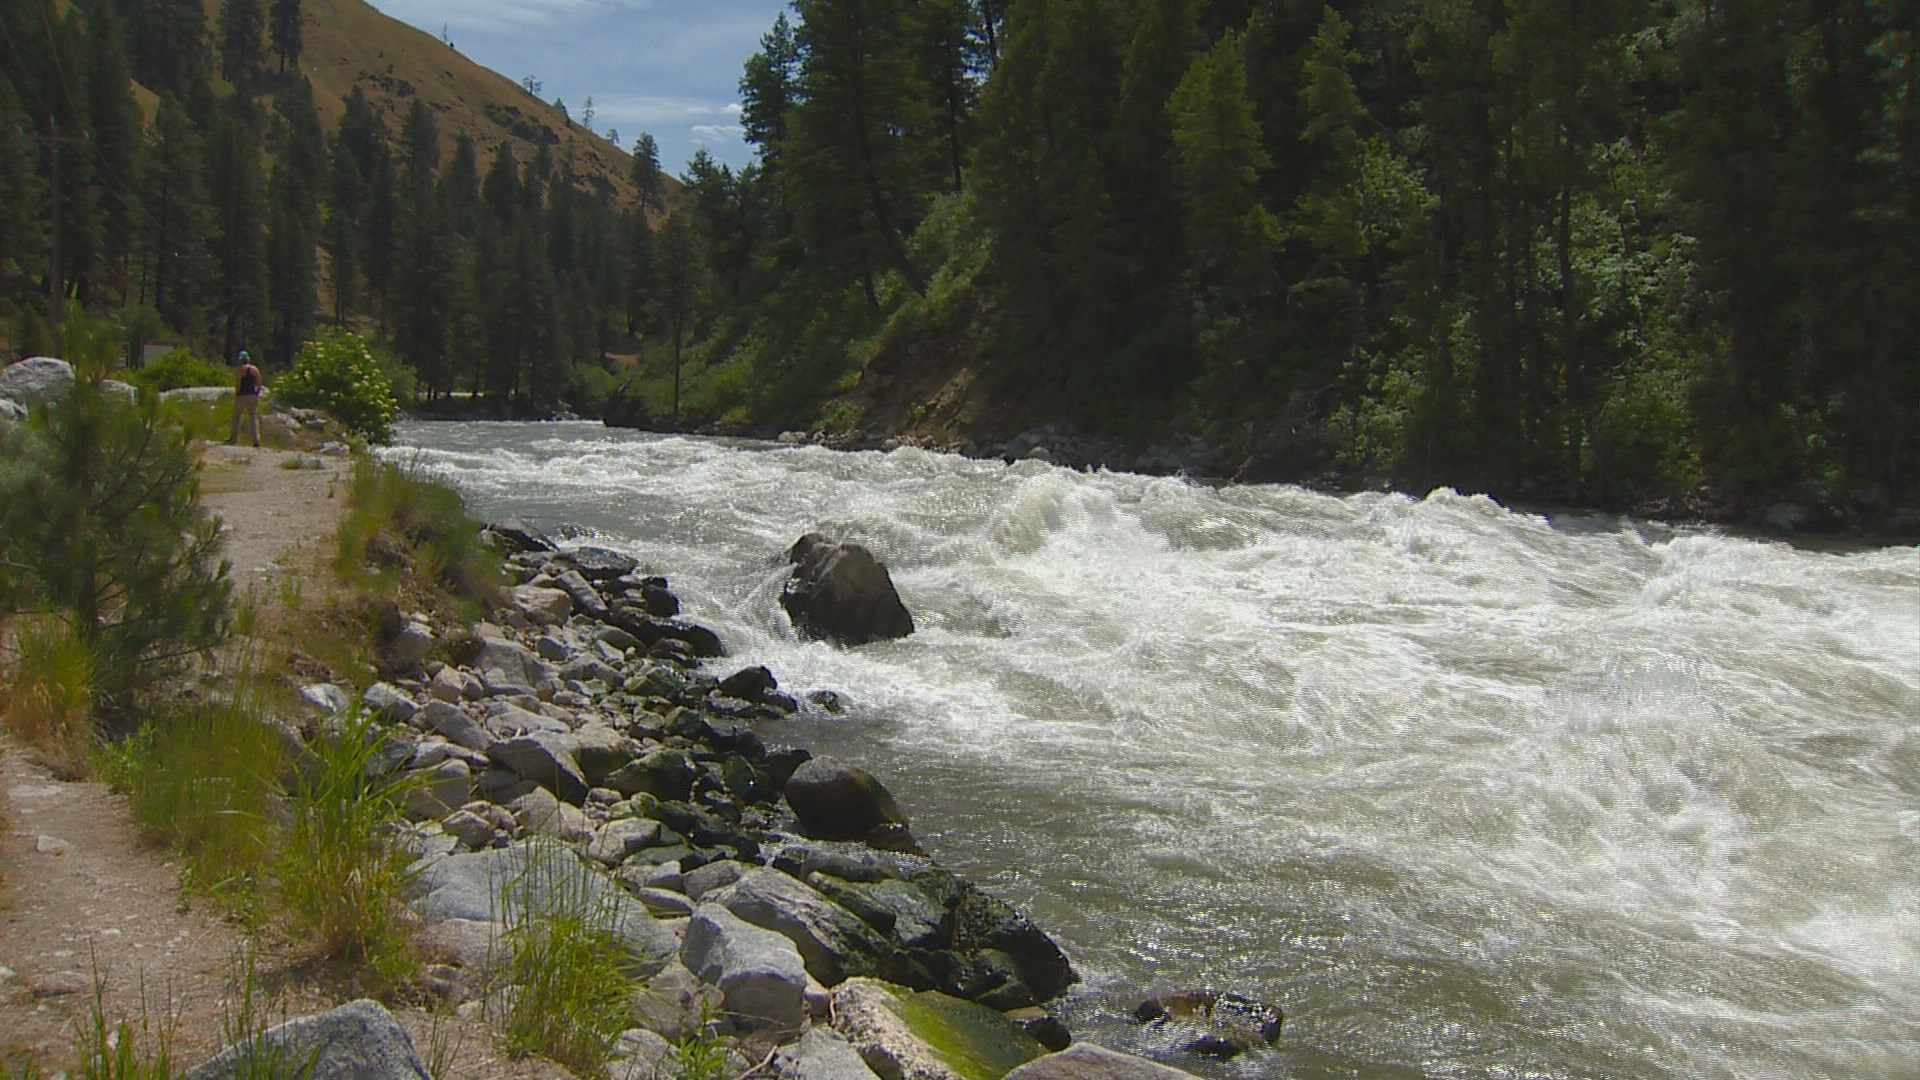 Jeep with 2 bodies inside recovered from Payette River